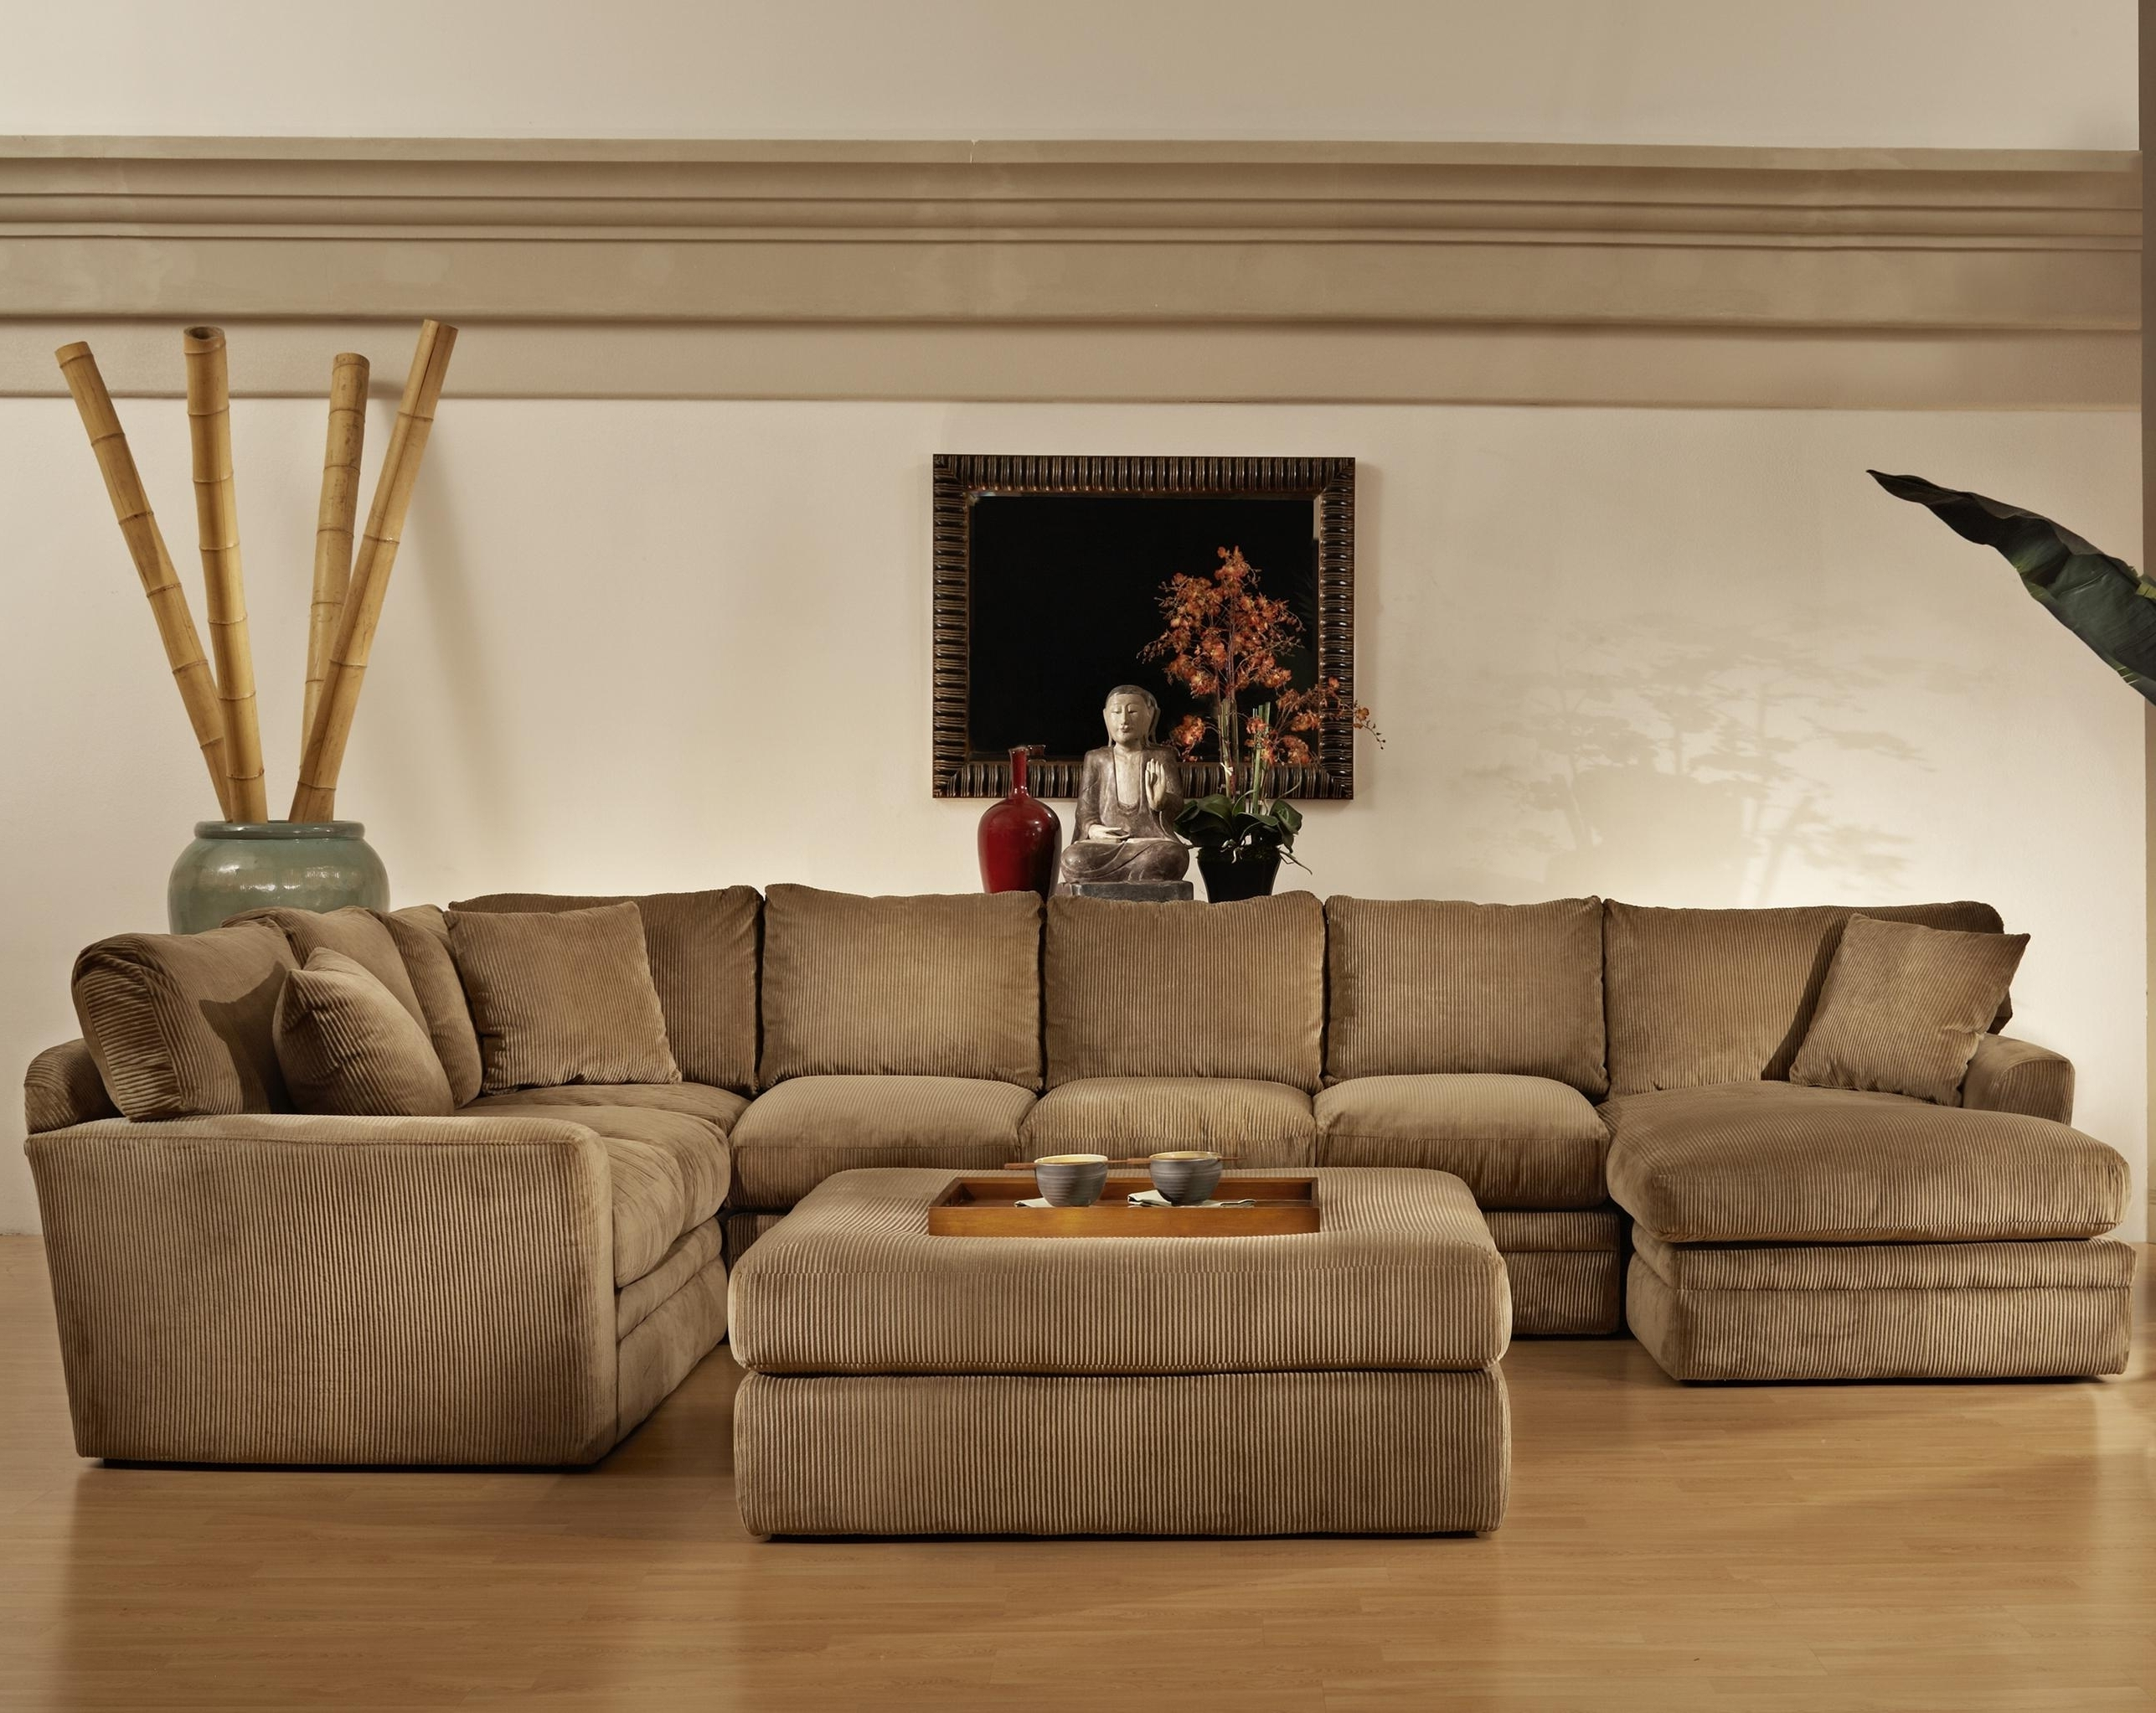 Most Popular Sectional Sofas With Chaise And Ottoman Intended For Extra Large Sectional Sofa With Chaise And Ottoman U Shaped In (View 7 of 15)